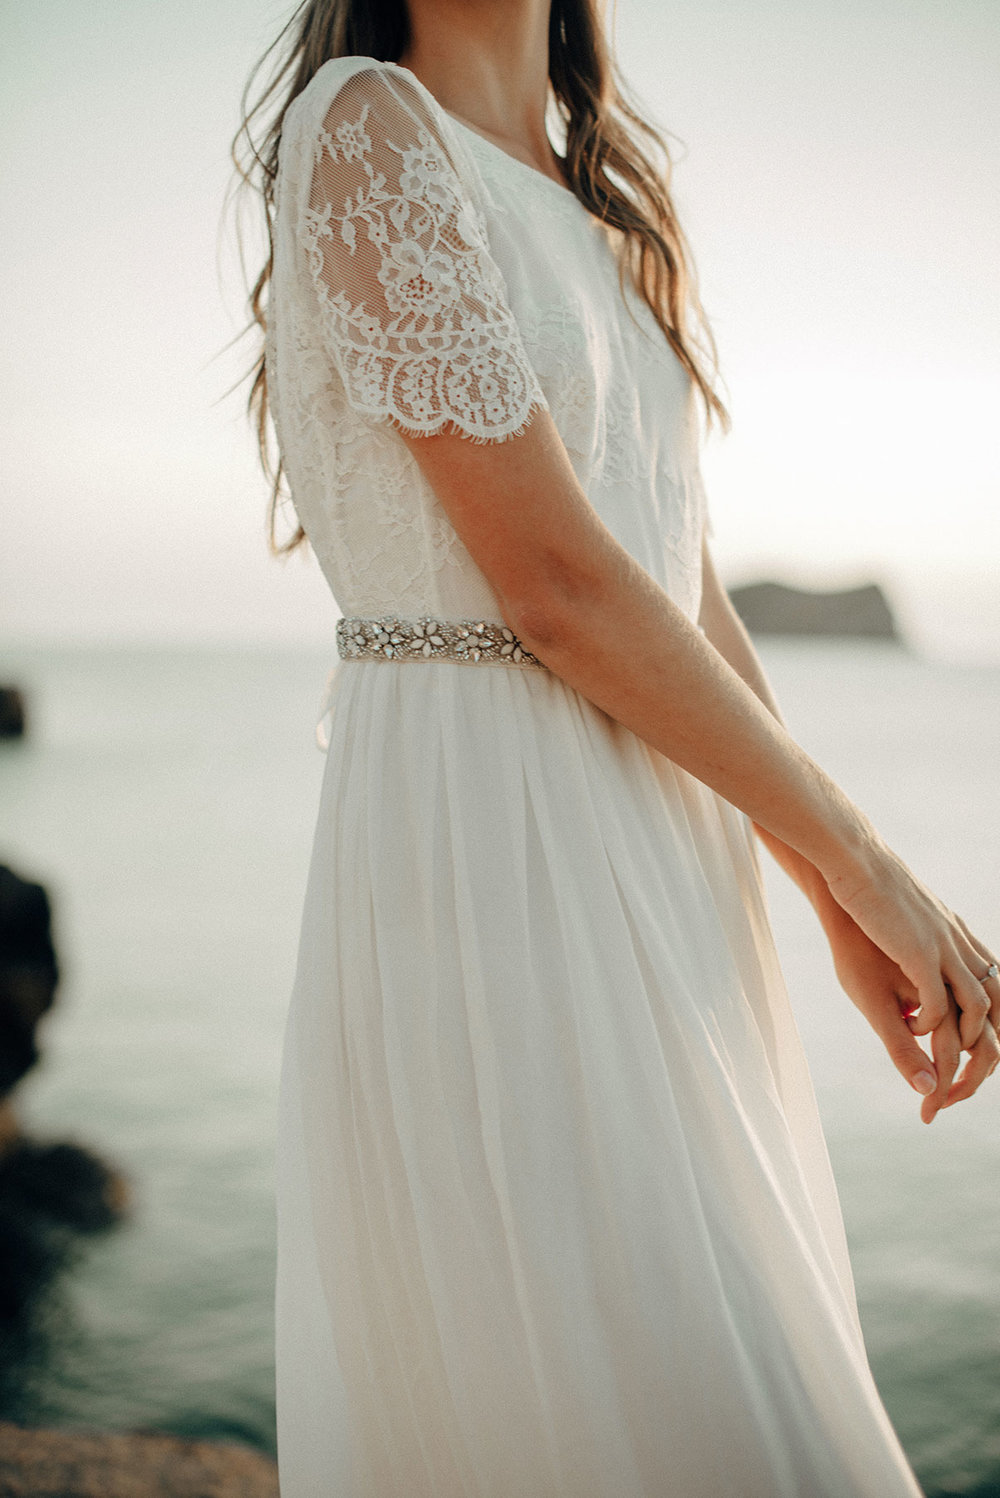 Beach dress - By Luna Bride the beach dress, is light, floaty, comfortable and organic wedding dress. Handmade in the UK it features a gathered silk skirt and soft lace top with a gorgeous low back.